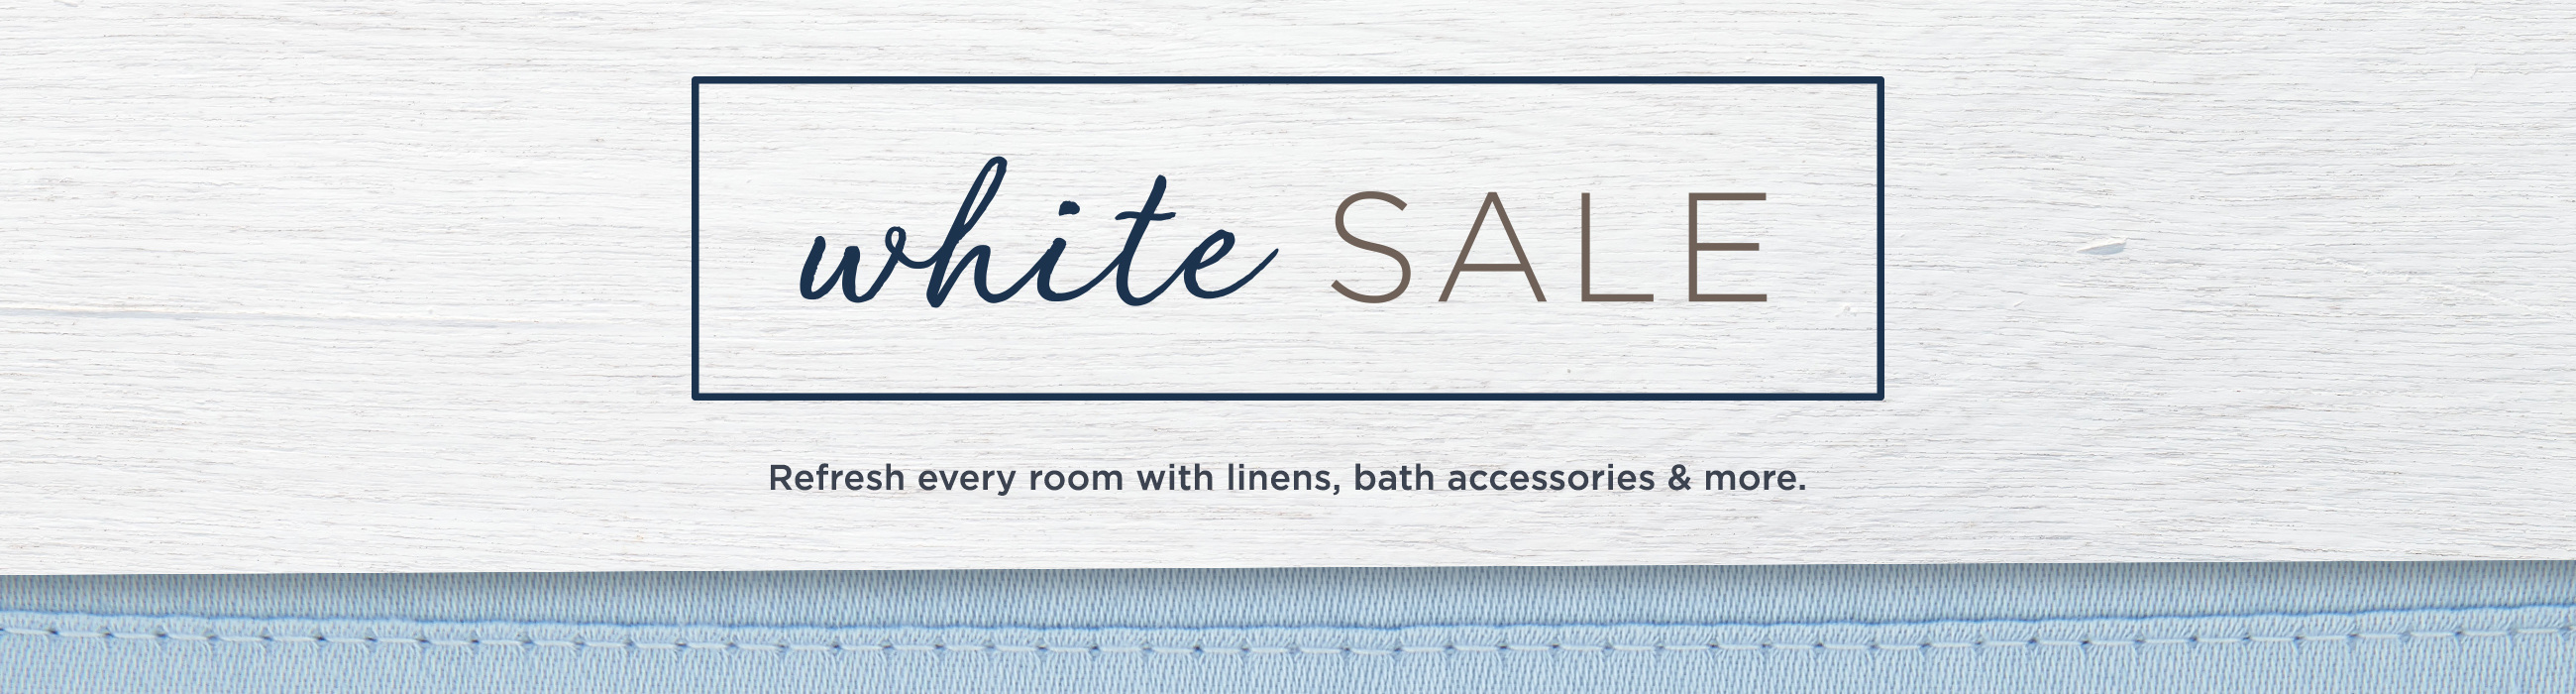 White Sale.  Refresh every room with linens, bath accessories & more.